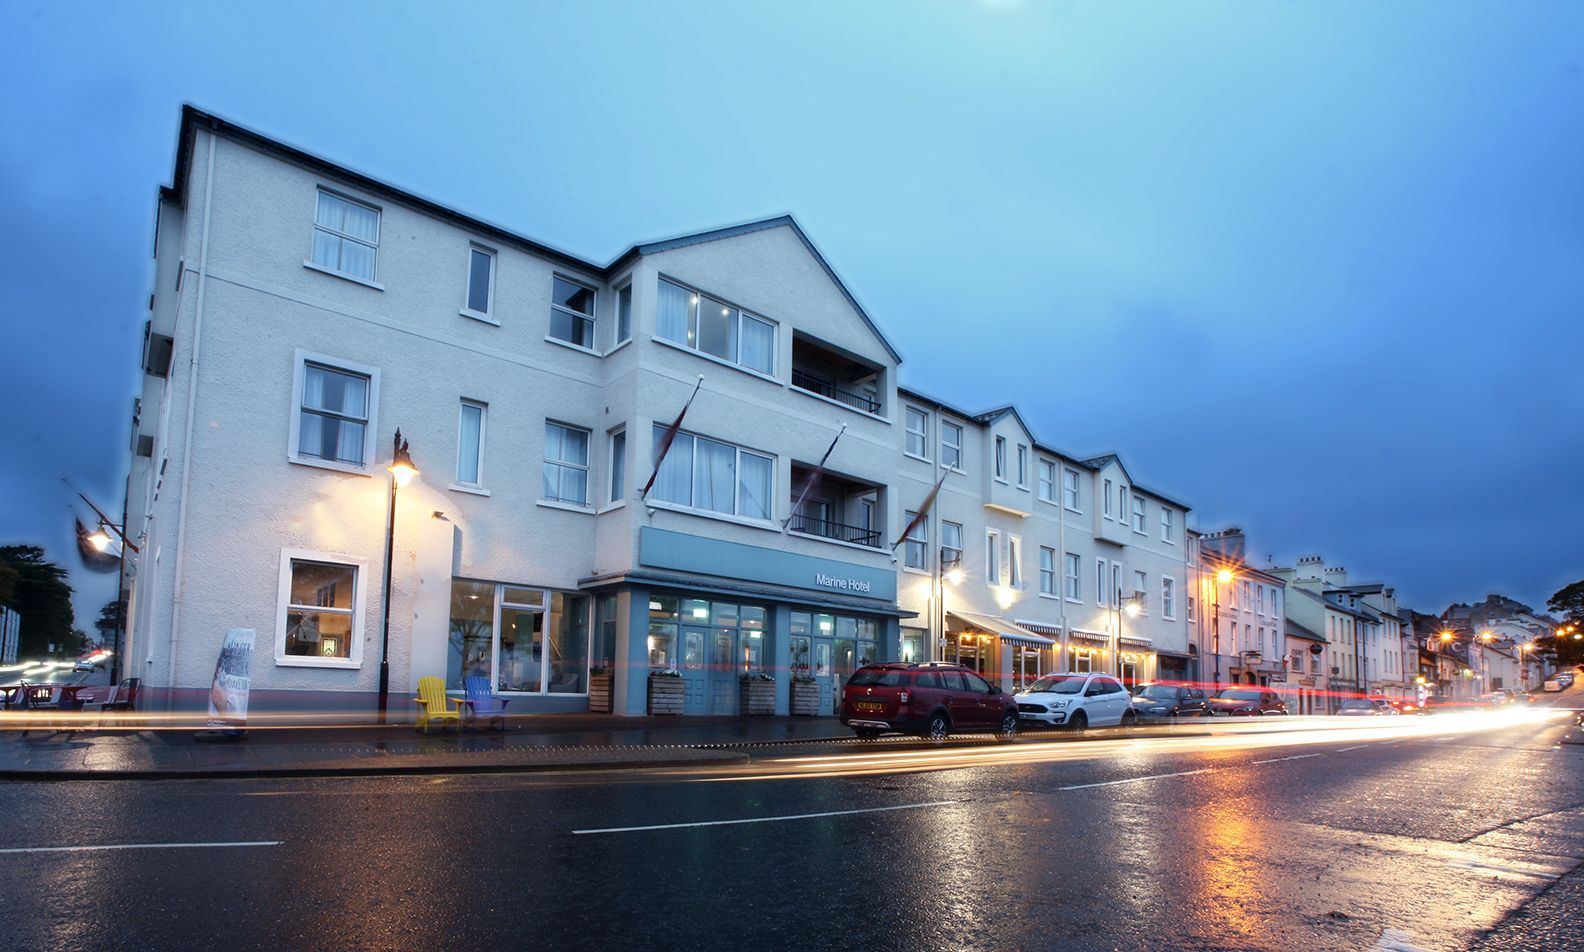 WARM WELCOME: The beachfront Marine Hotel in Ballycastle